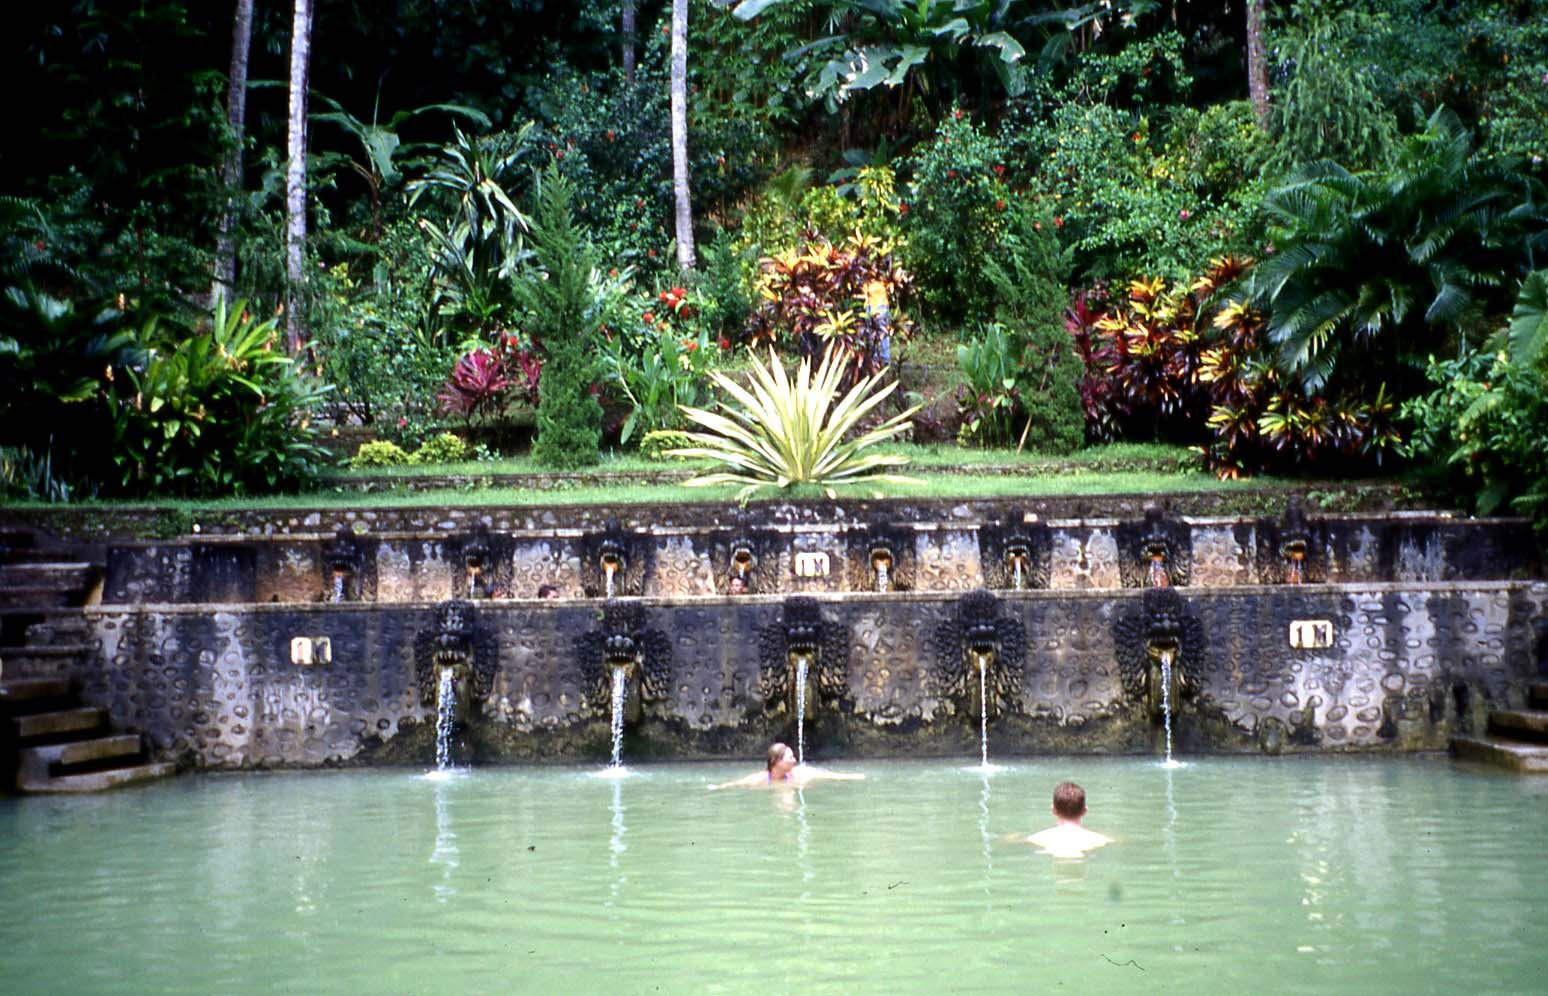 The hot springs of Banjar